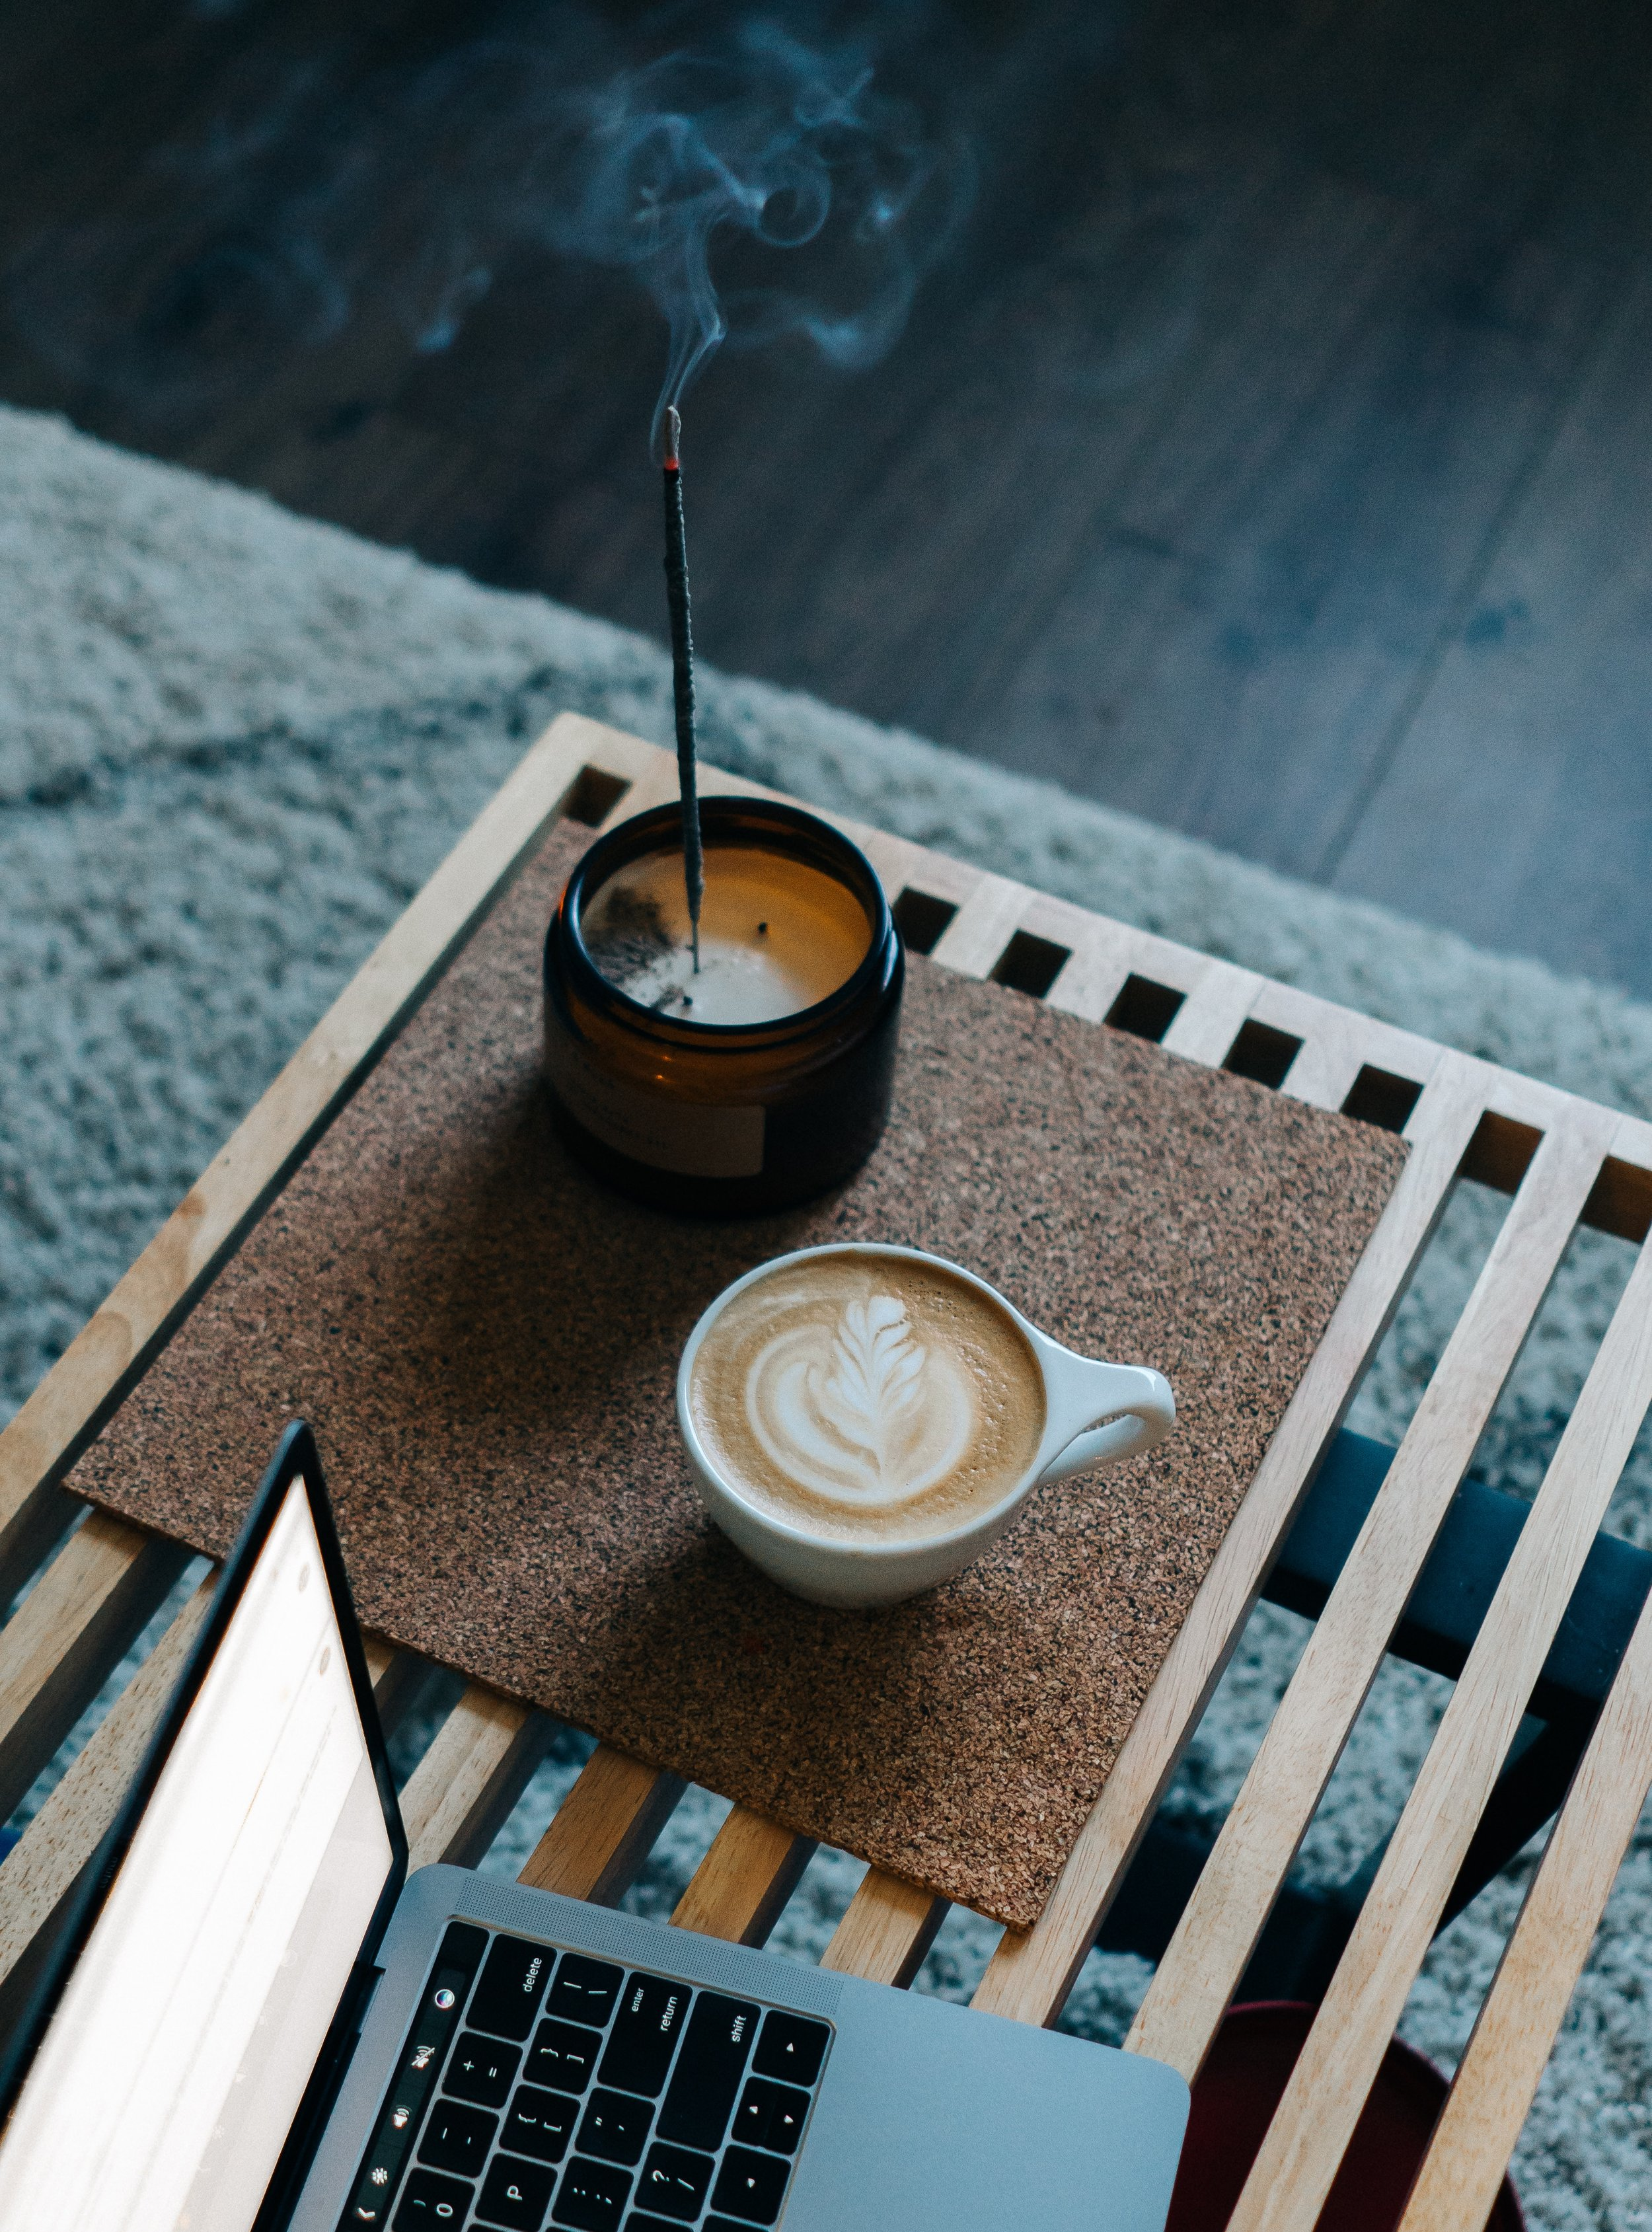 A cup of freshly-brewed coffee and slowly-burning incense pulls scents of nature into this workspace / Image Source:    Mike Marquez via Unsplash